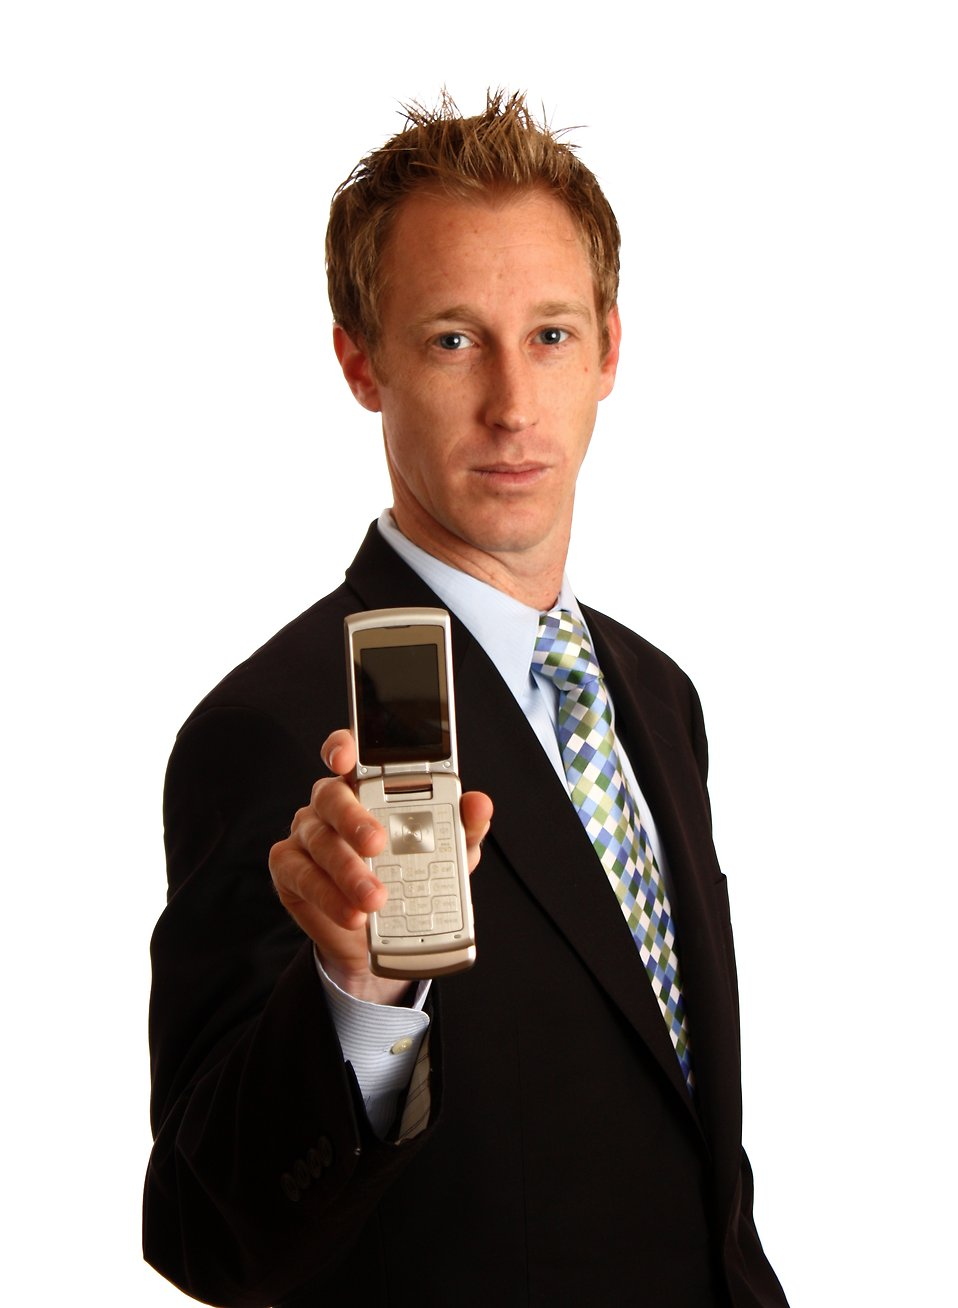 A young businessman holding a cell phone : Free Stock Photo